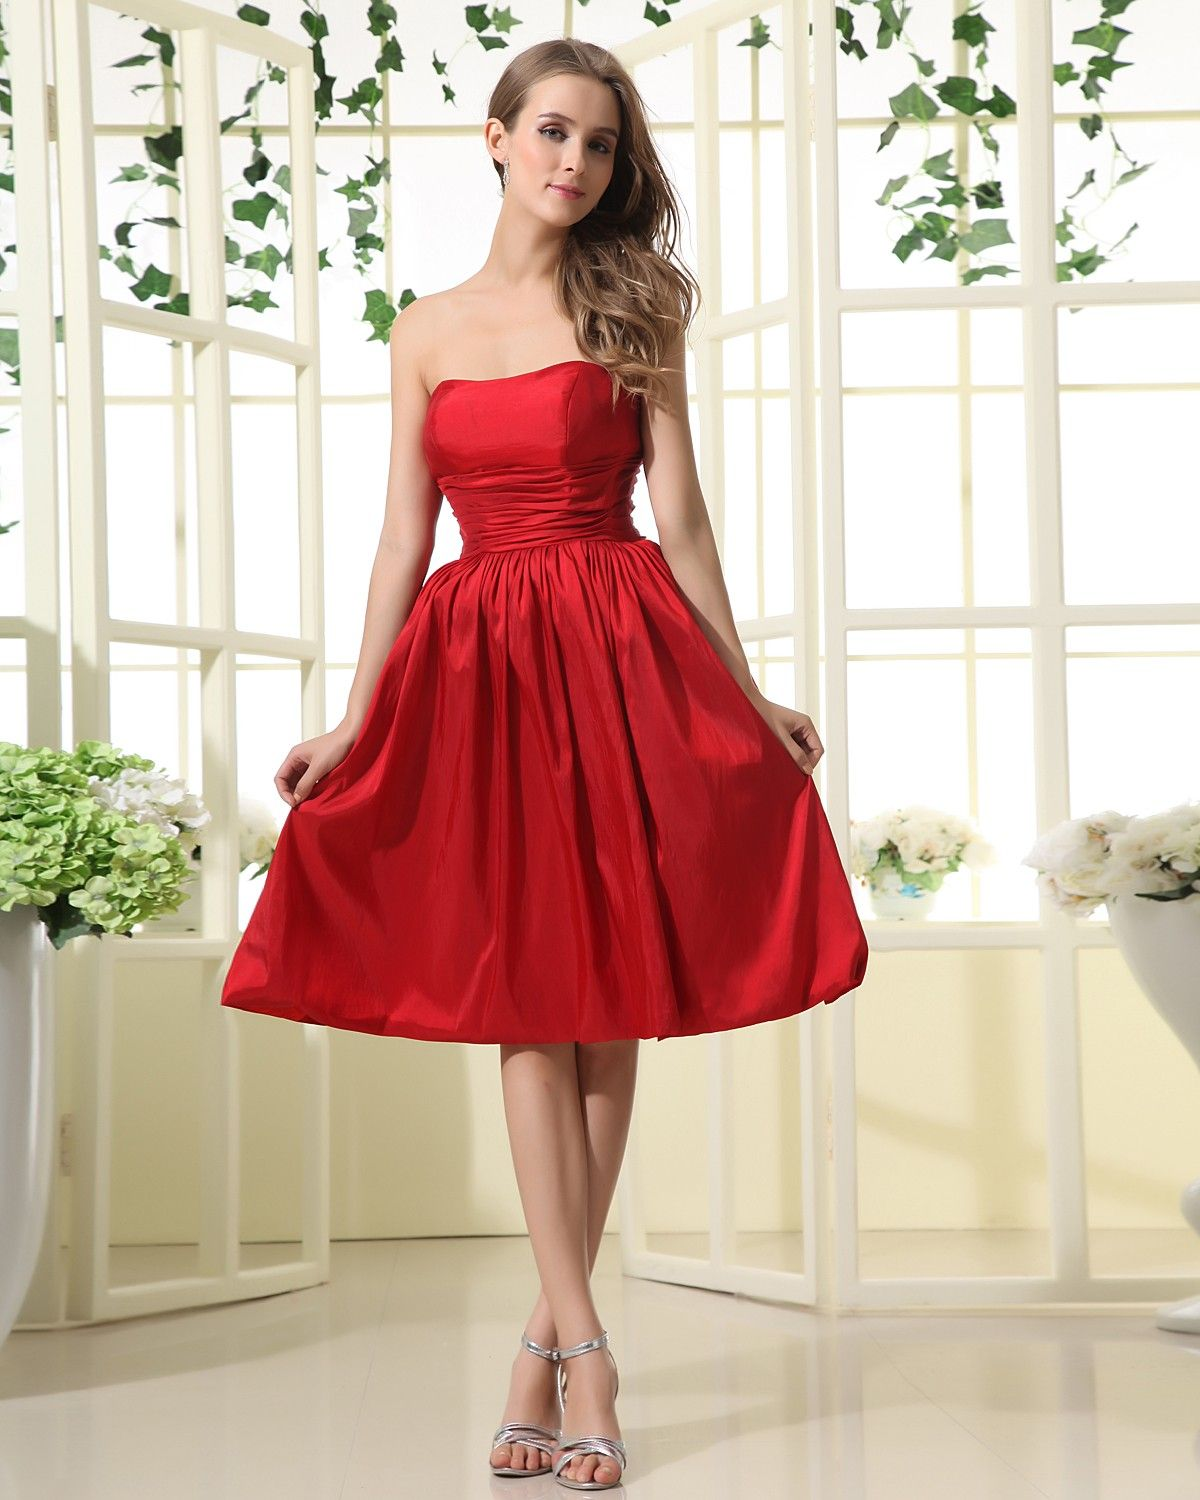 Satin a line red bridesmaid dress from weddingdressus wedding satin a line red bridesmaid dress from weddingdressus ombrellifo Image collections